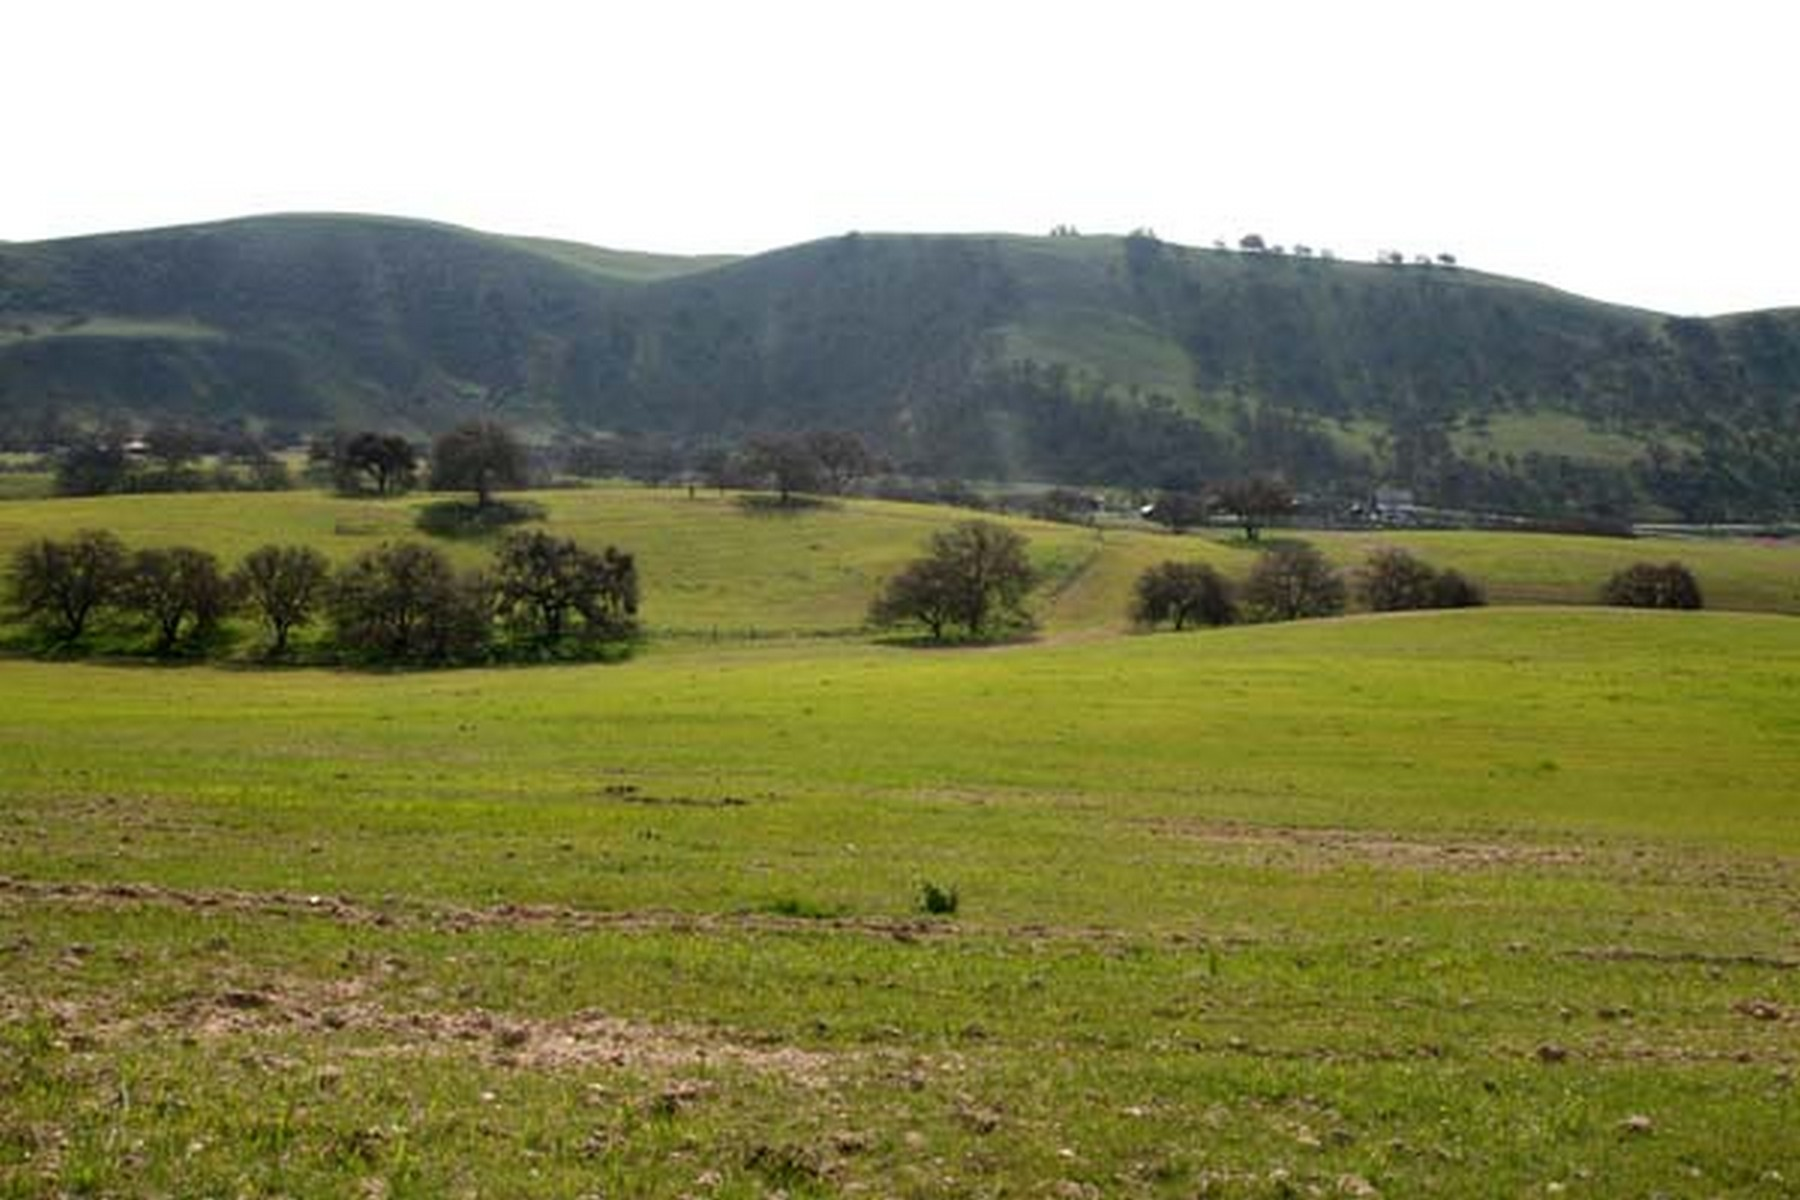 Land for Sale at 80 Acre Wine Country Land 0 Nickel Creek Rd San Miguel, California, 93451 United States